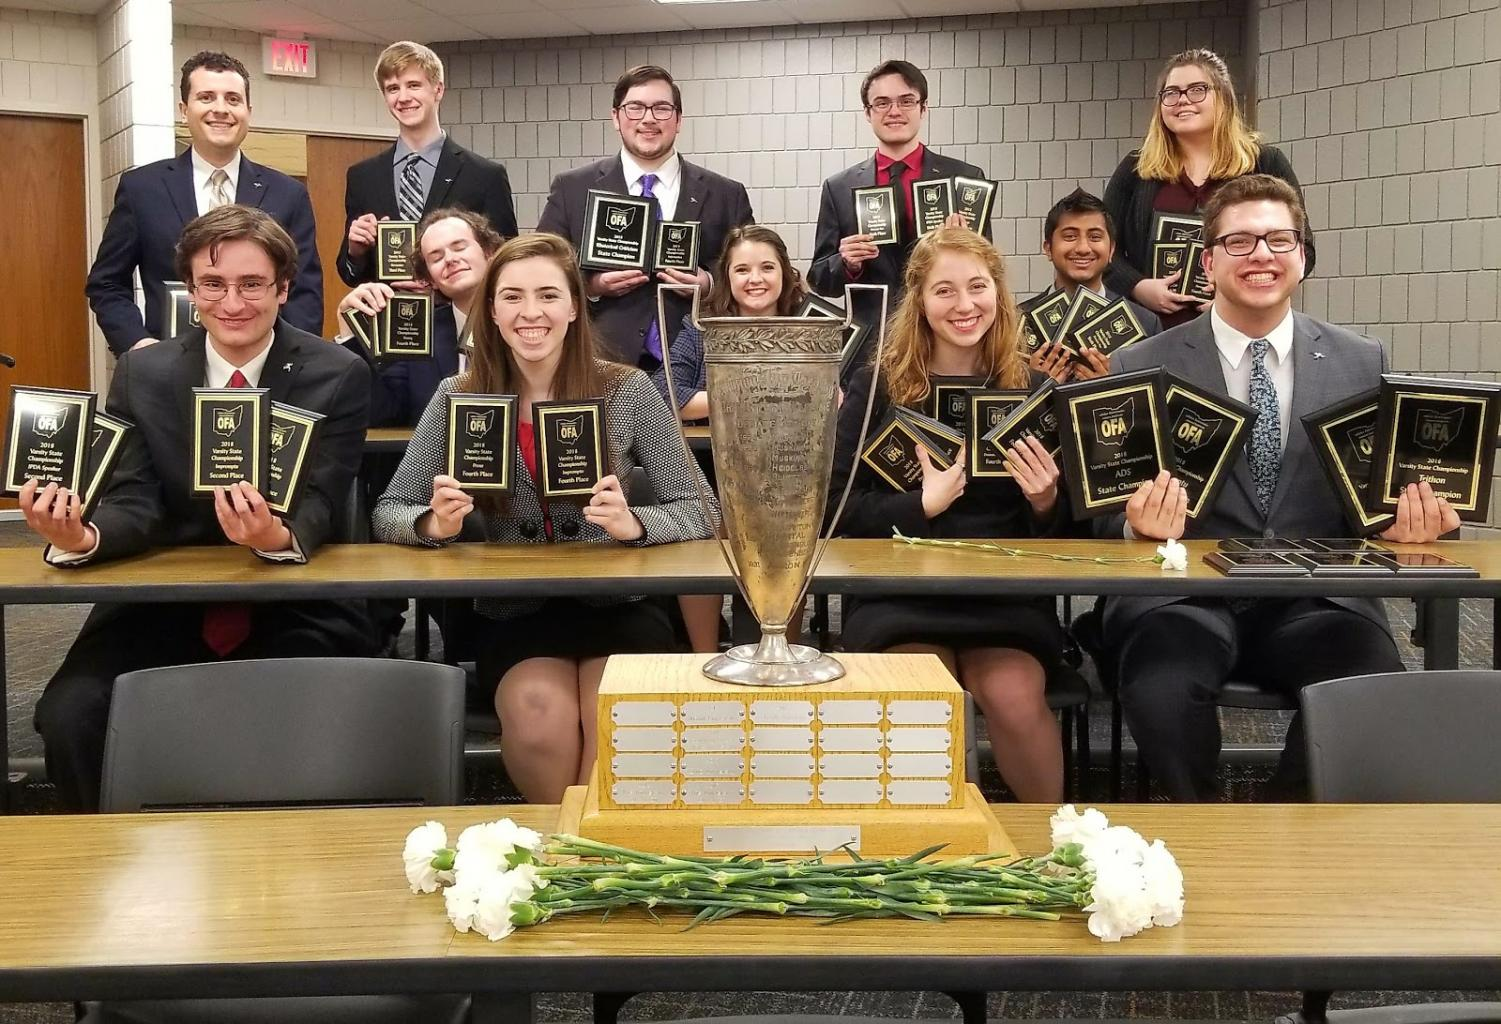 The Speech and Debate Team with their awards.